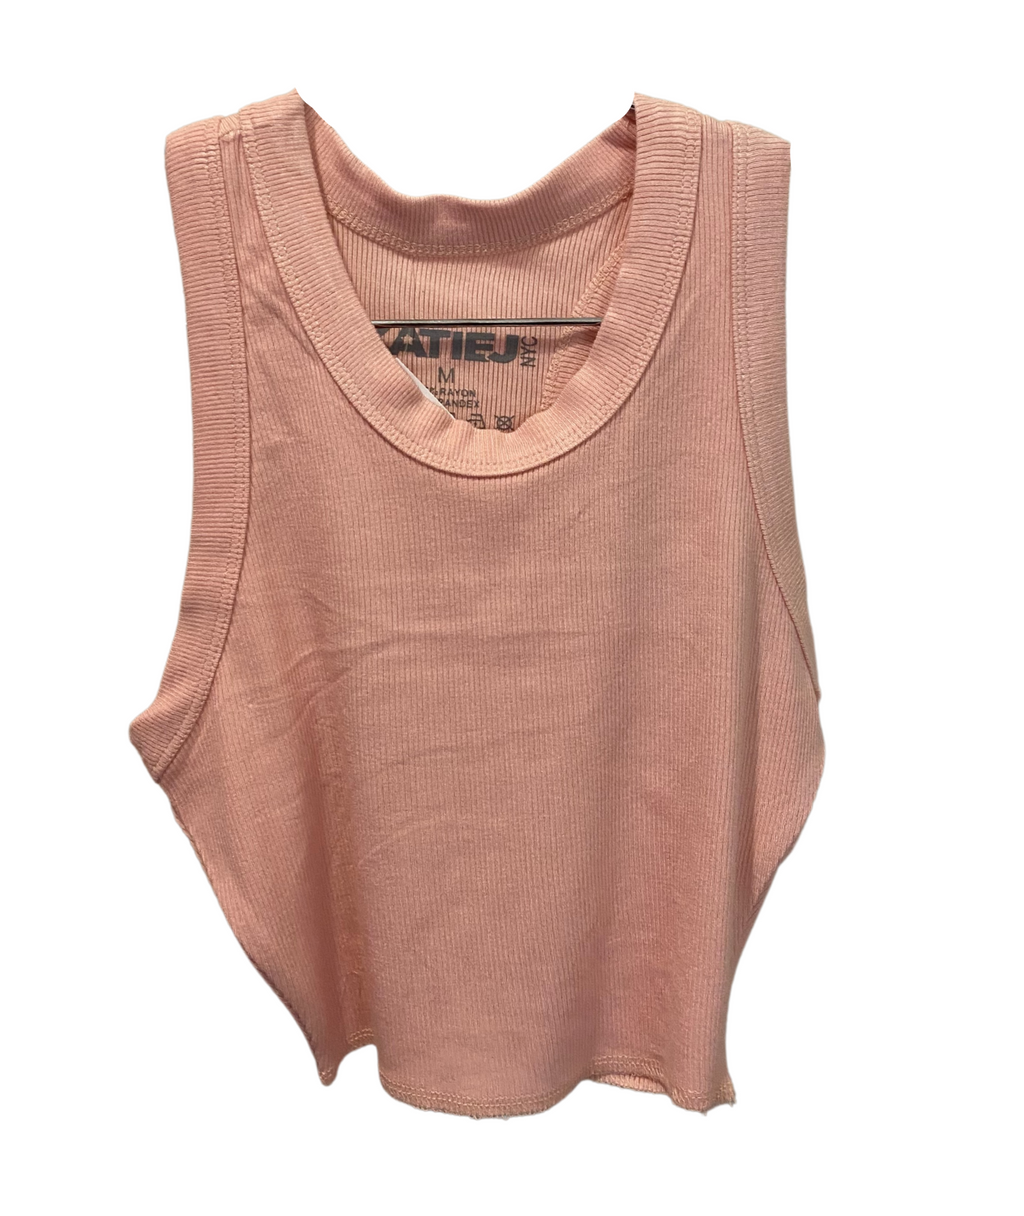 Katie J NYC Girls Livi Blush Tank